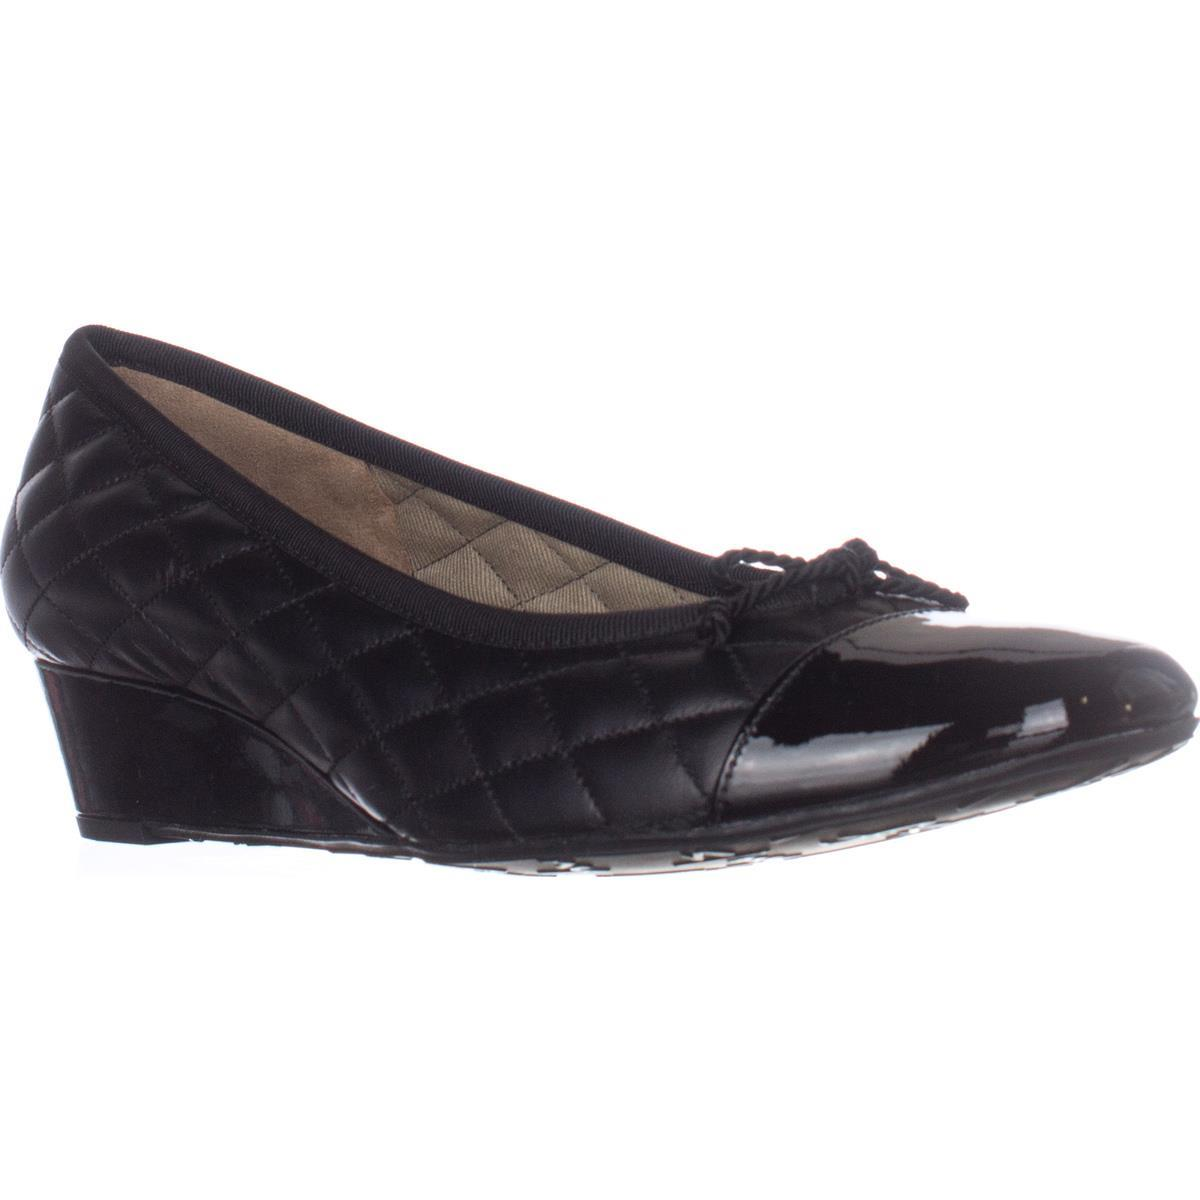 Womens French Sole FS/NY Deluxe Quilted Wedge Pumps, Black